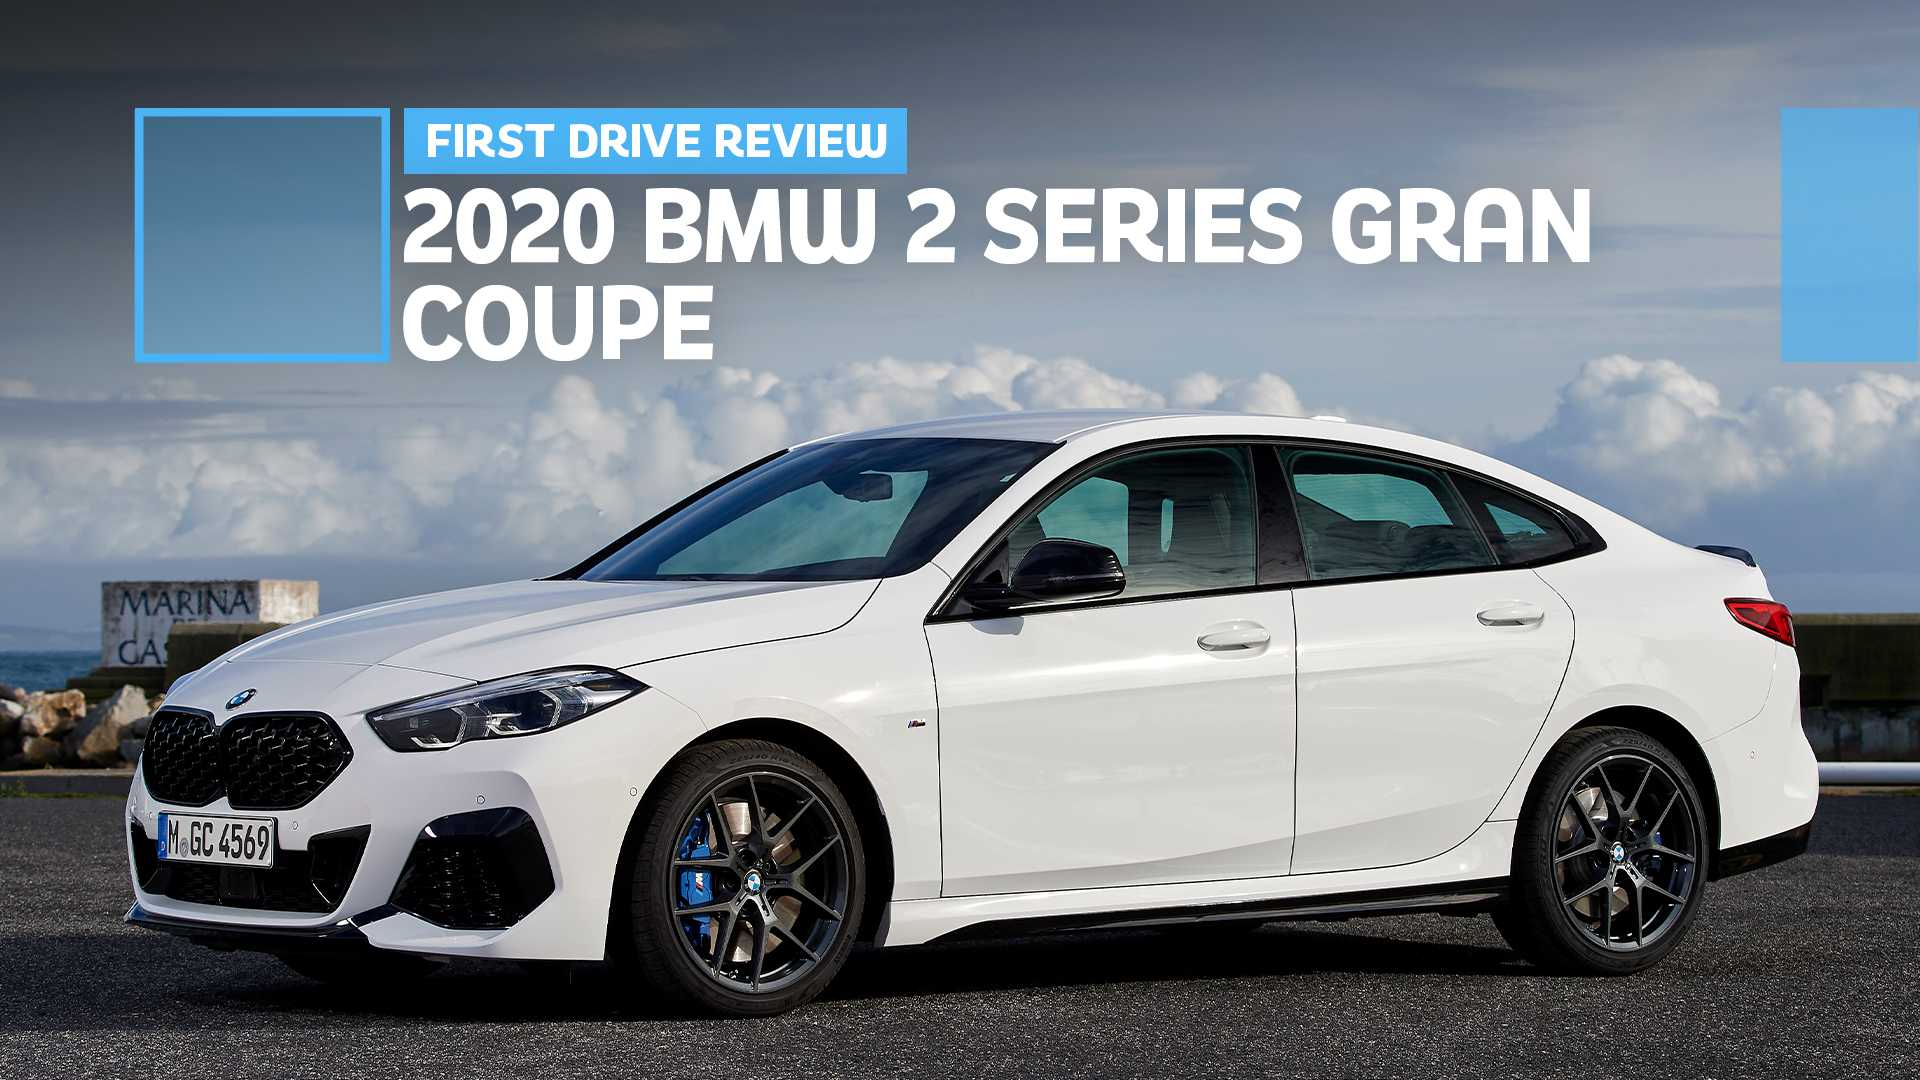 2020 Bmw 2 Series Gran Coupe First Drive Review Too Niche